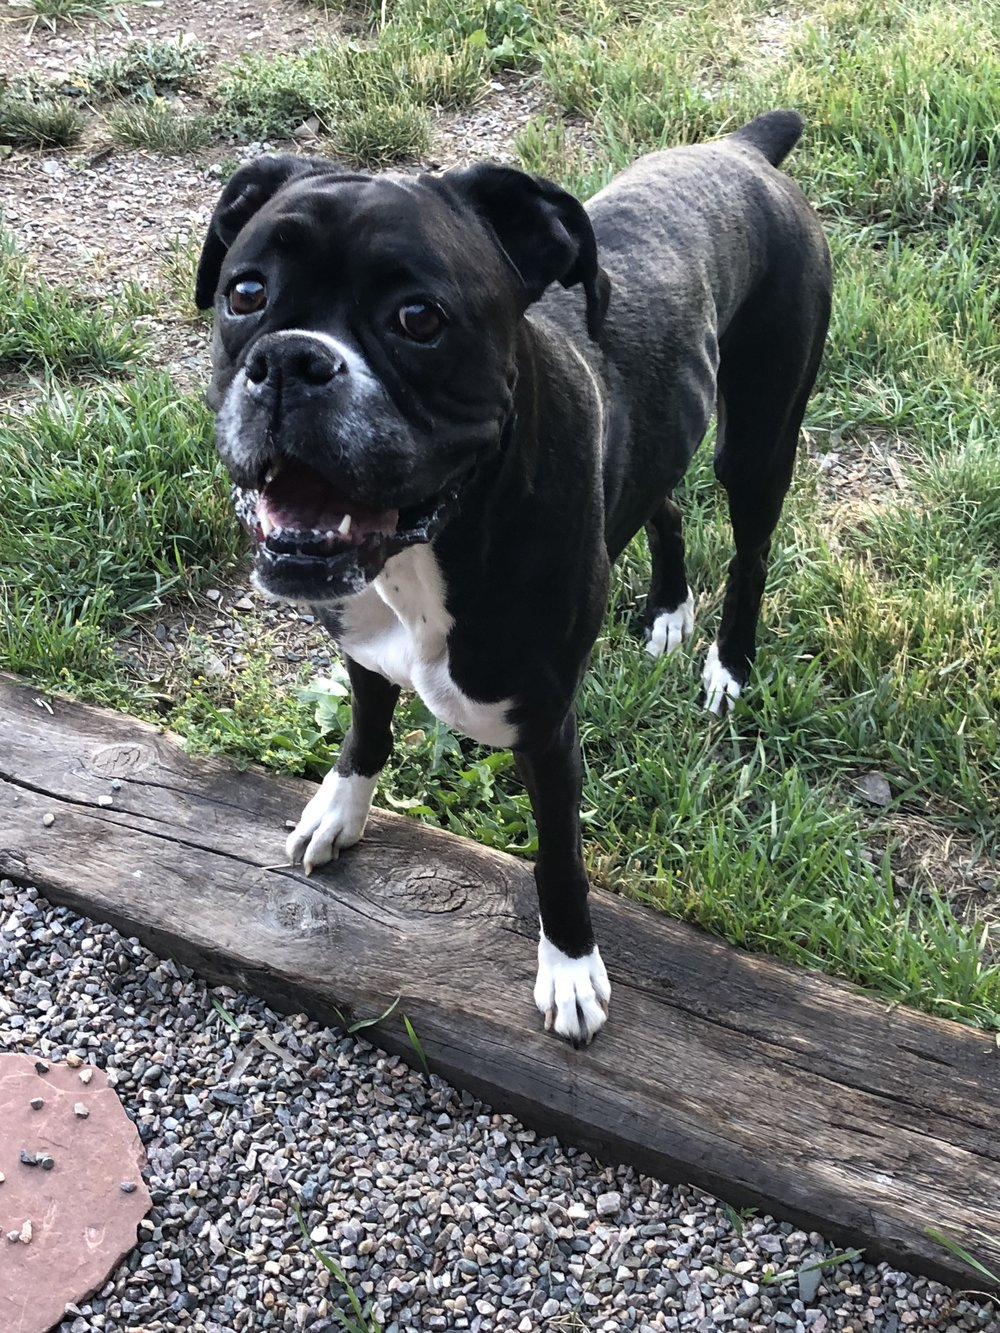 bella - 9 year old Boxer from Durango, Colorado Needs: Medium/Large Rear-End Wheelchair ~ $350.00Read More